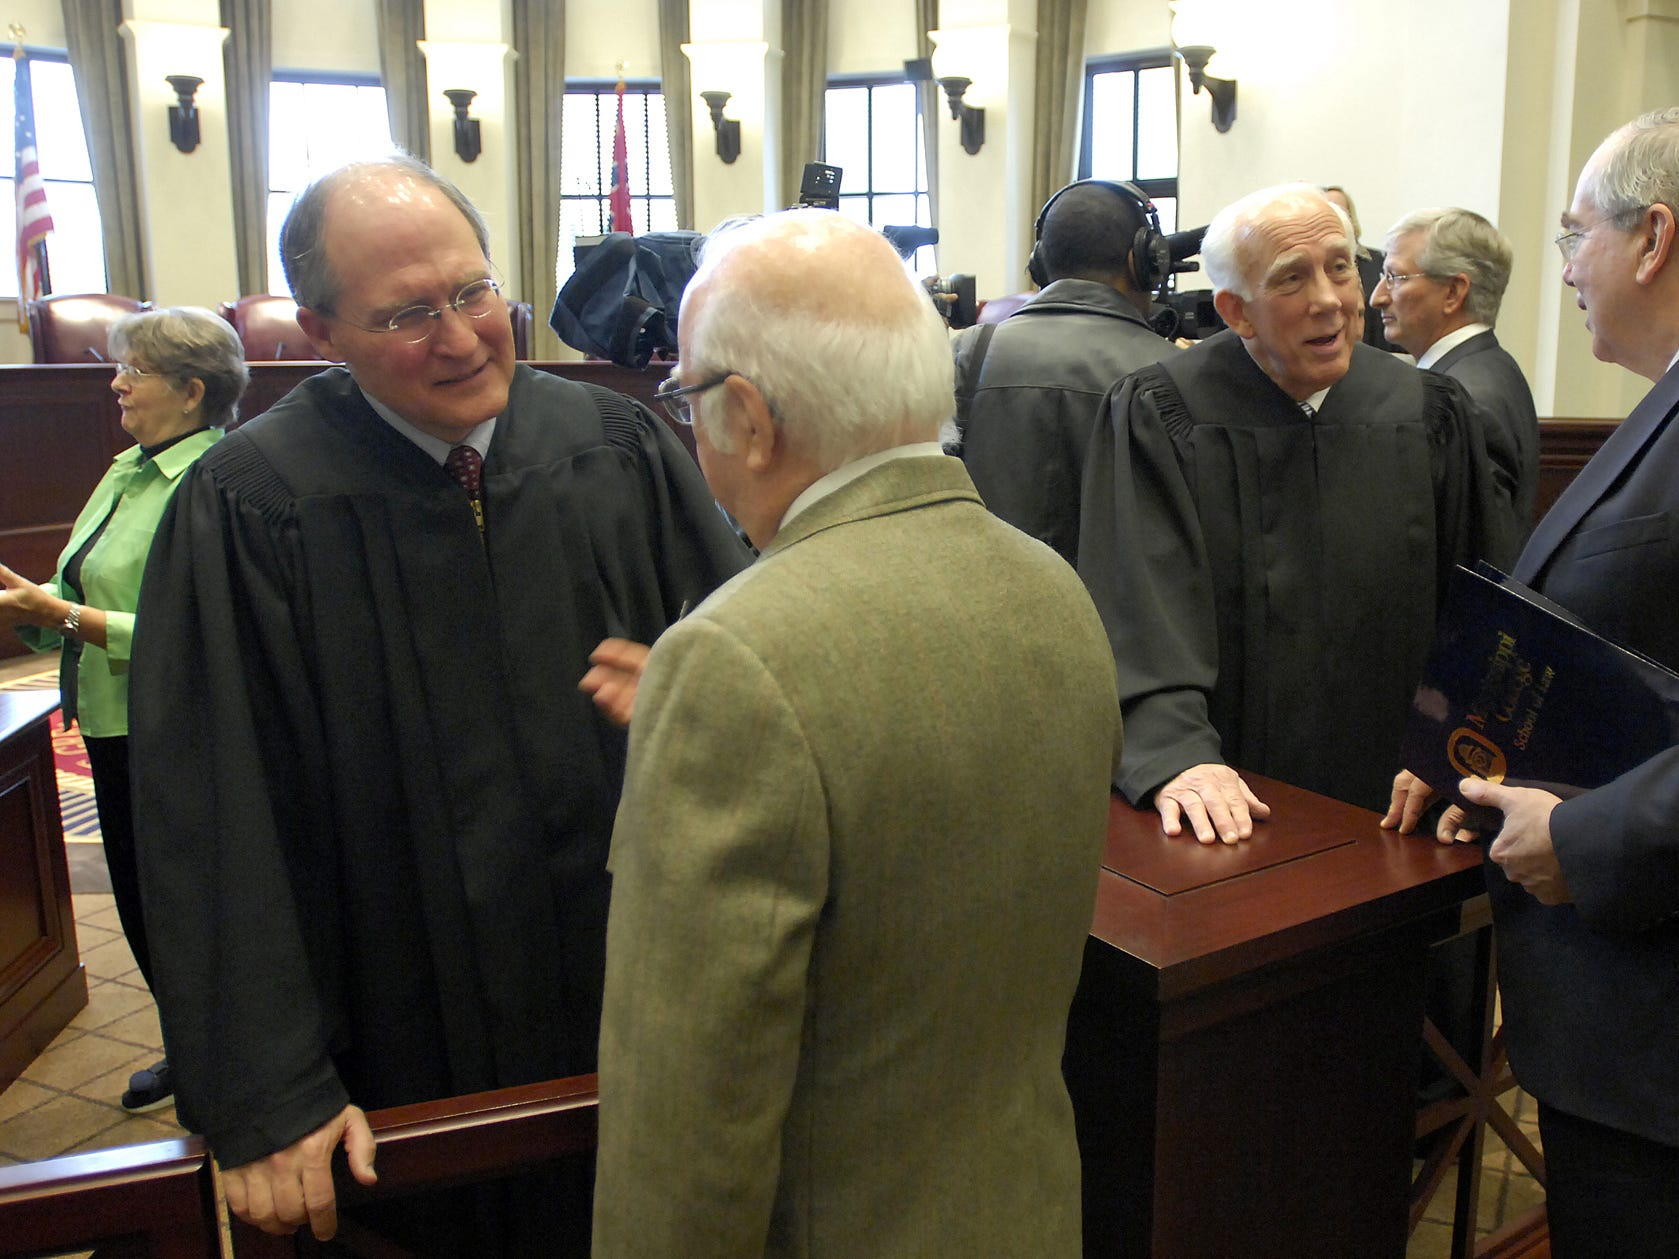 Bill Waller Jr., (left) and Jim Kitchens of Crystal Springs speak with well wishers following a swearing in ceremony for new justices ceremony in the new Gartin Justice Building in Jackson.